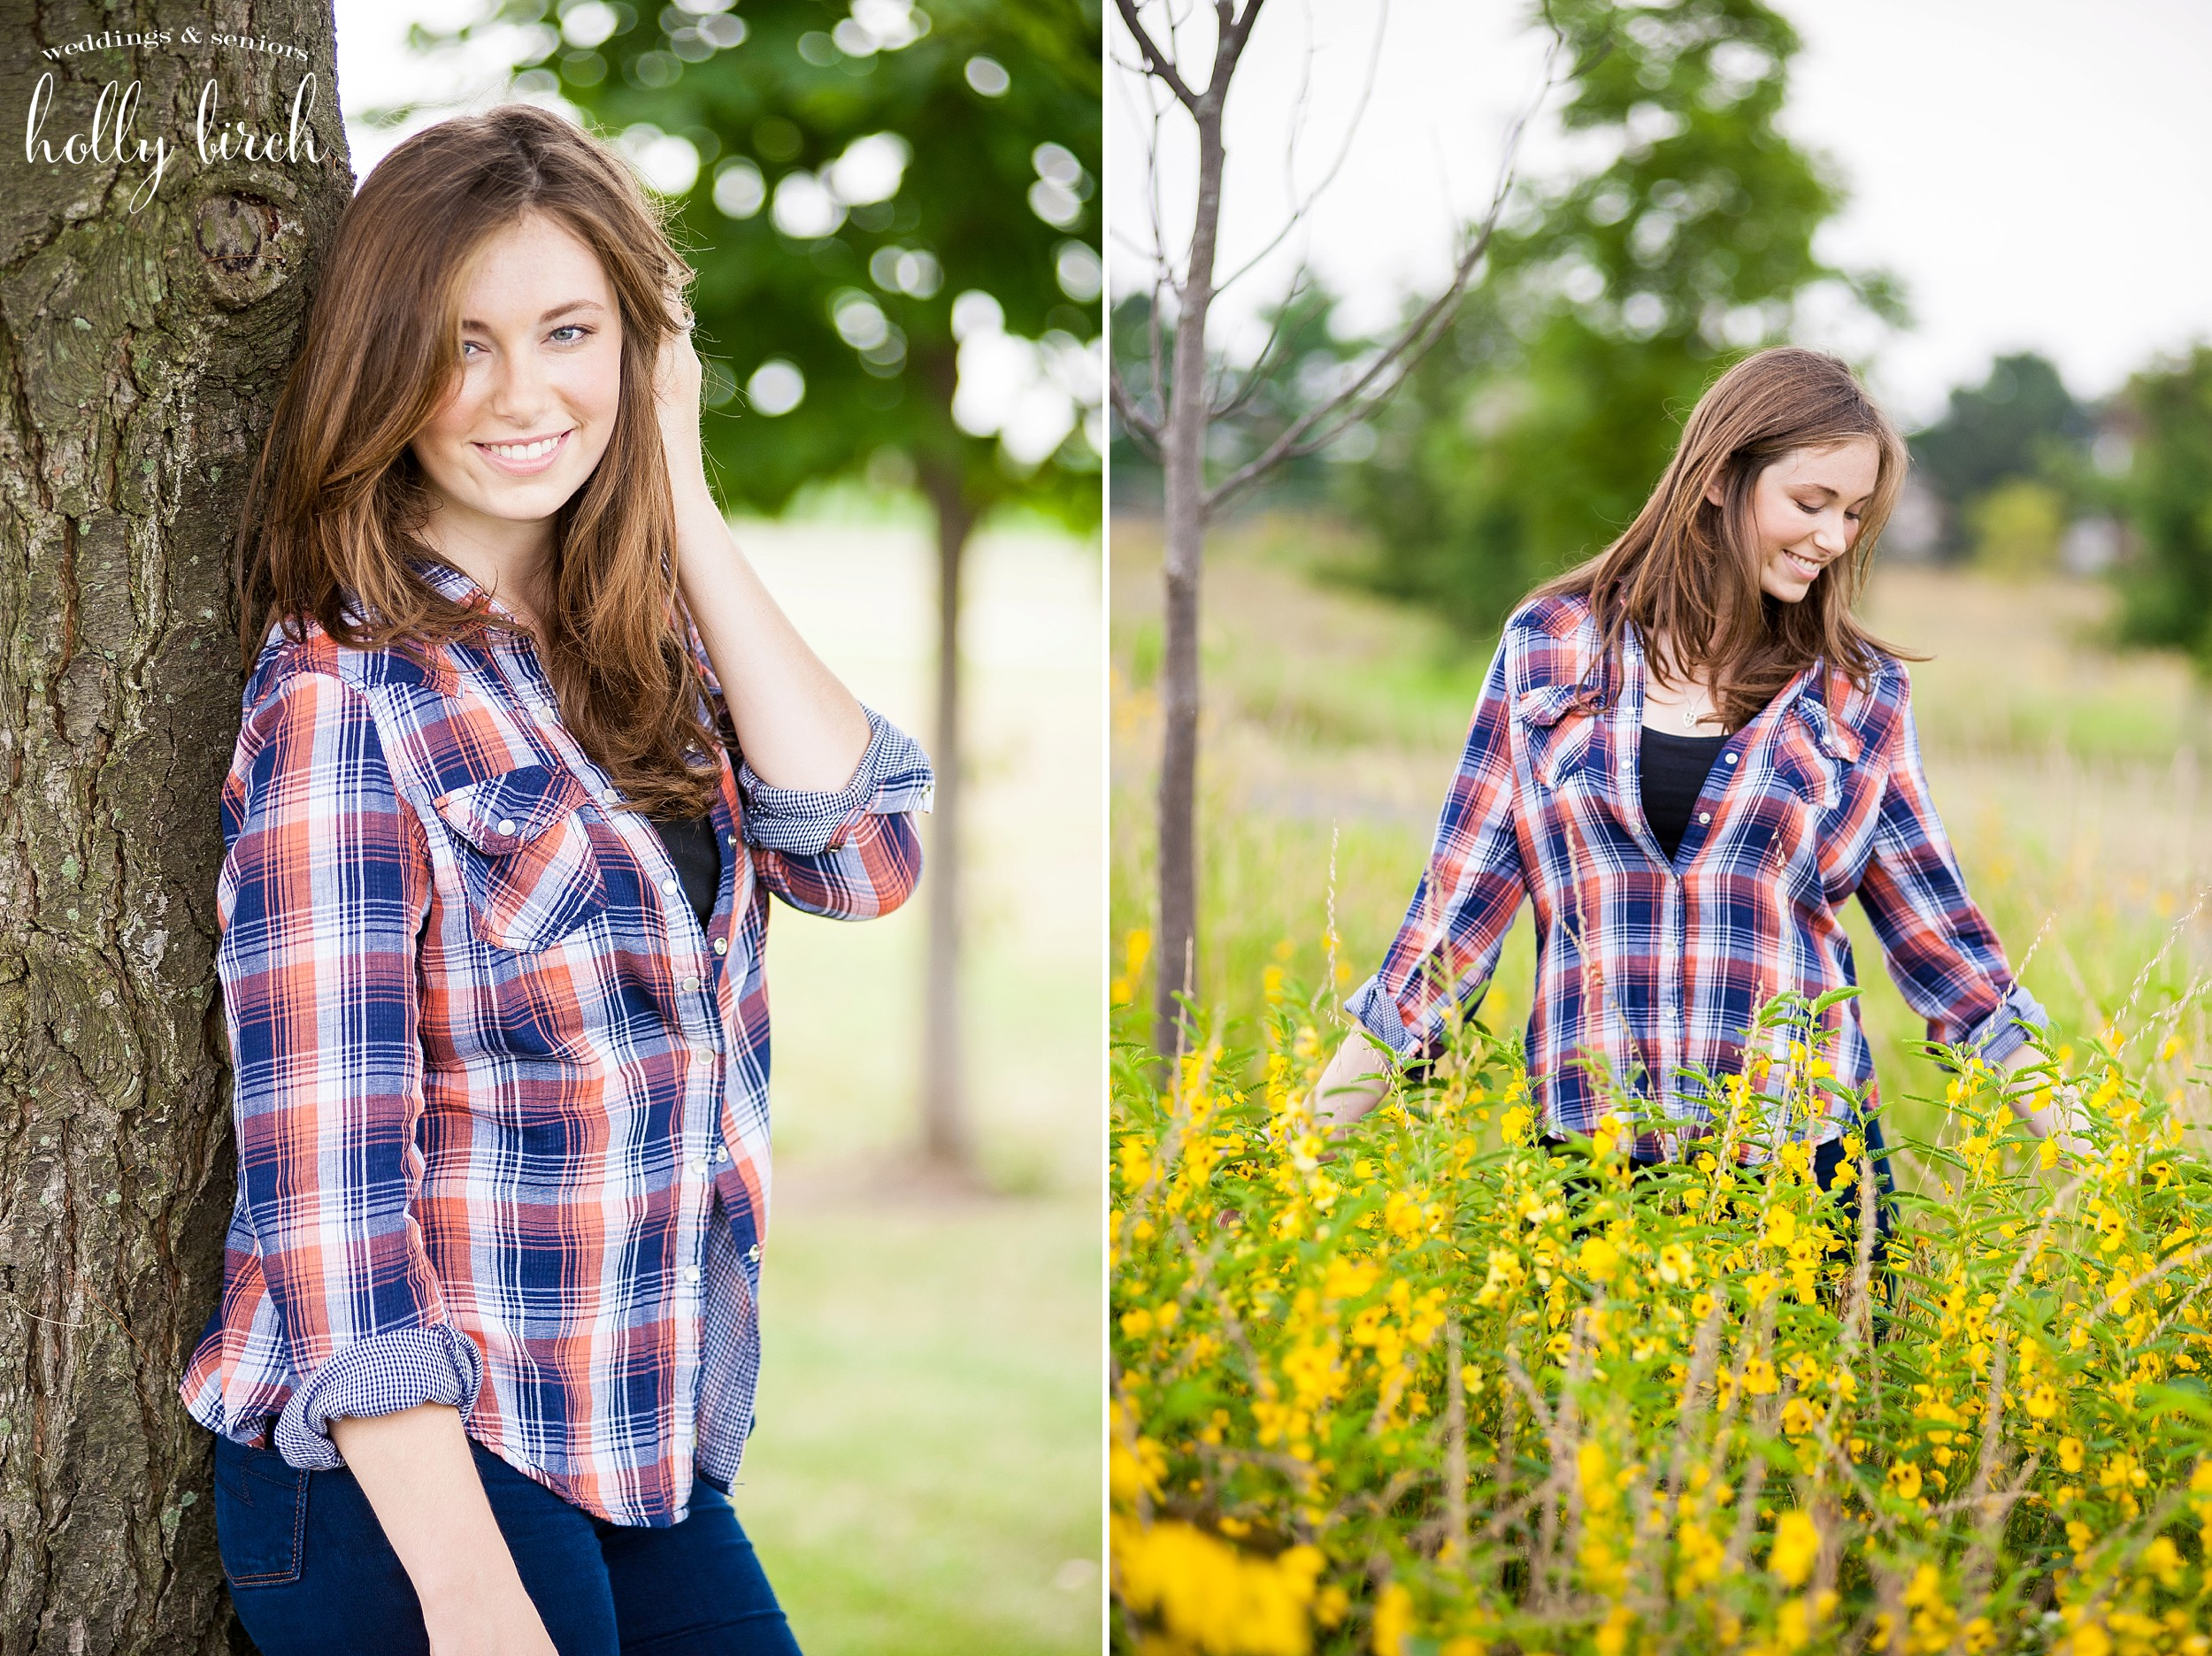 senior pix with tree and tall weeds